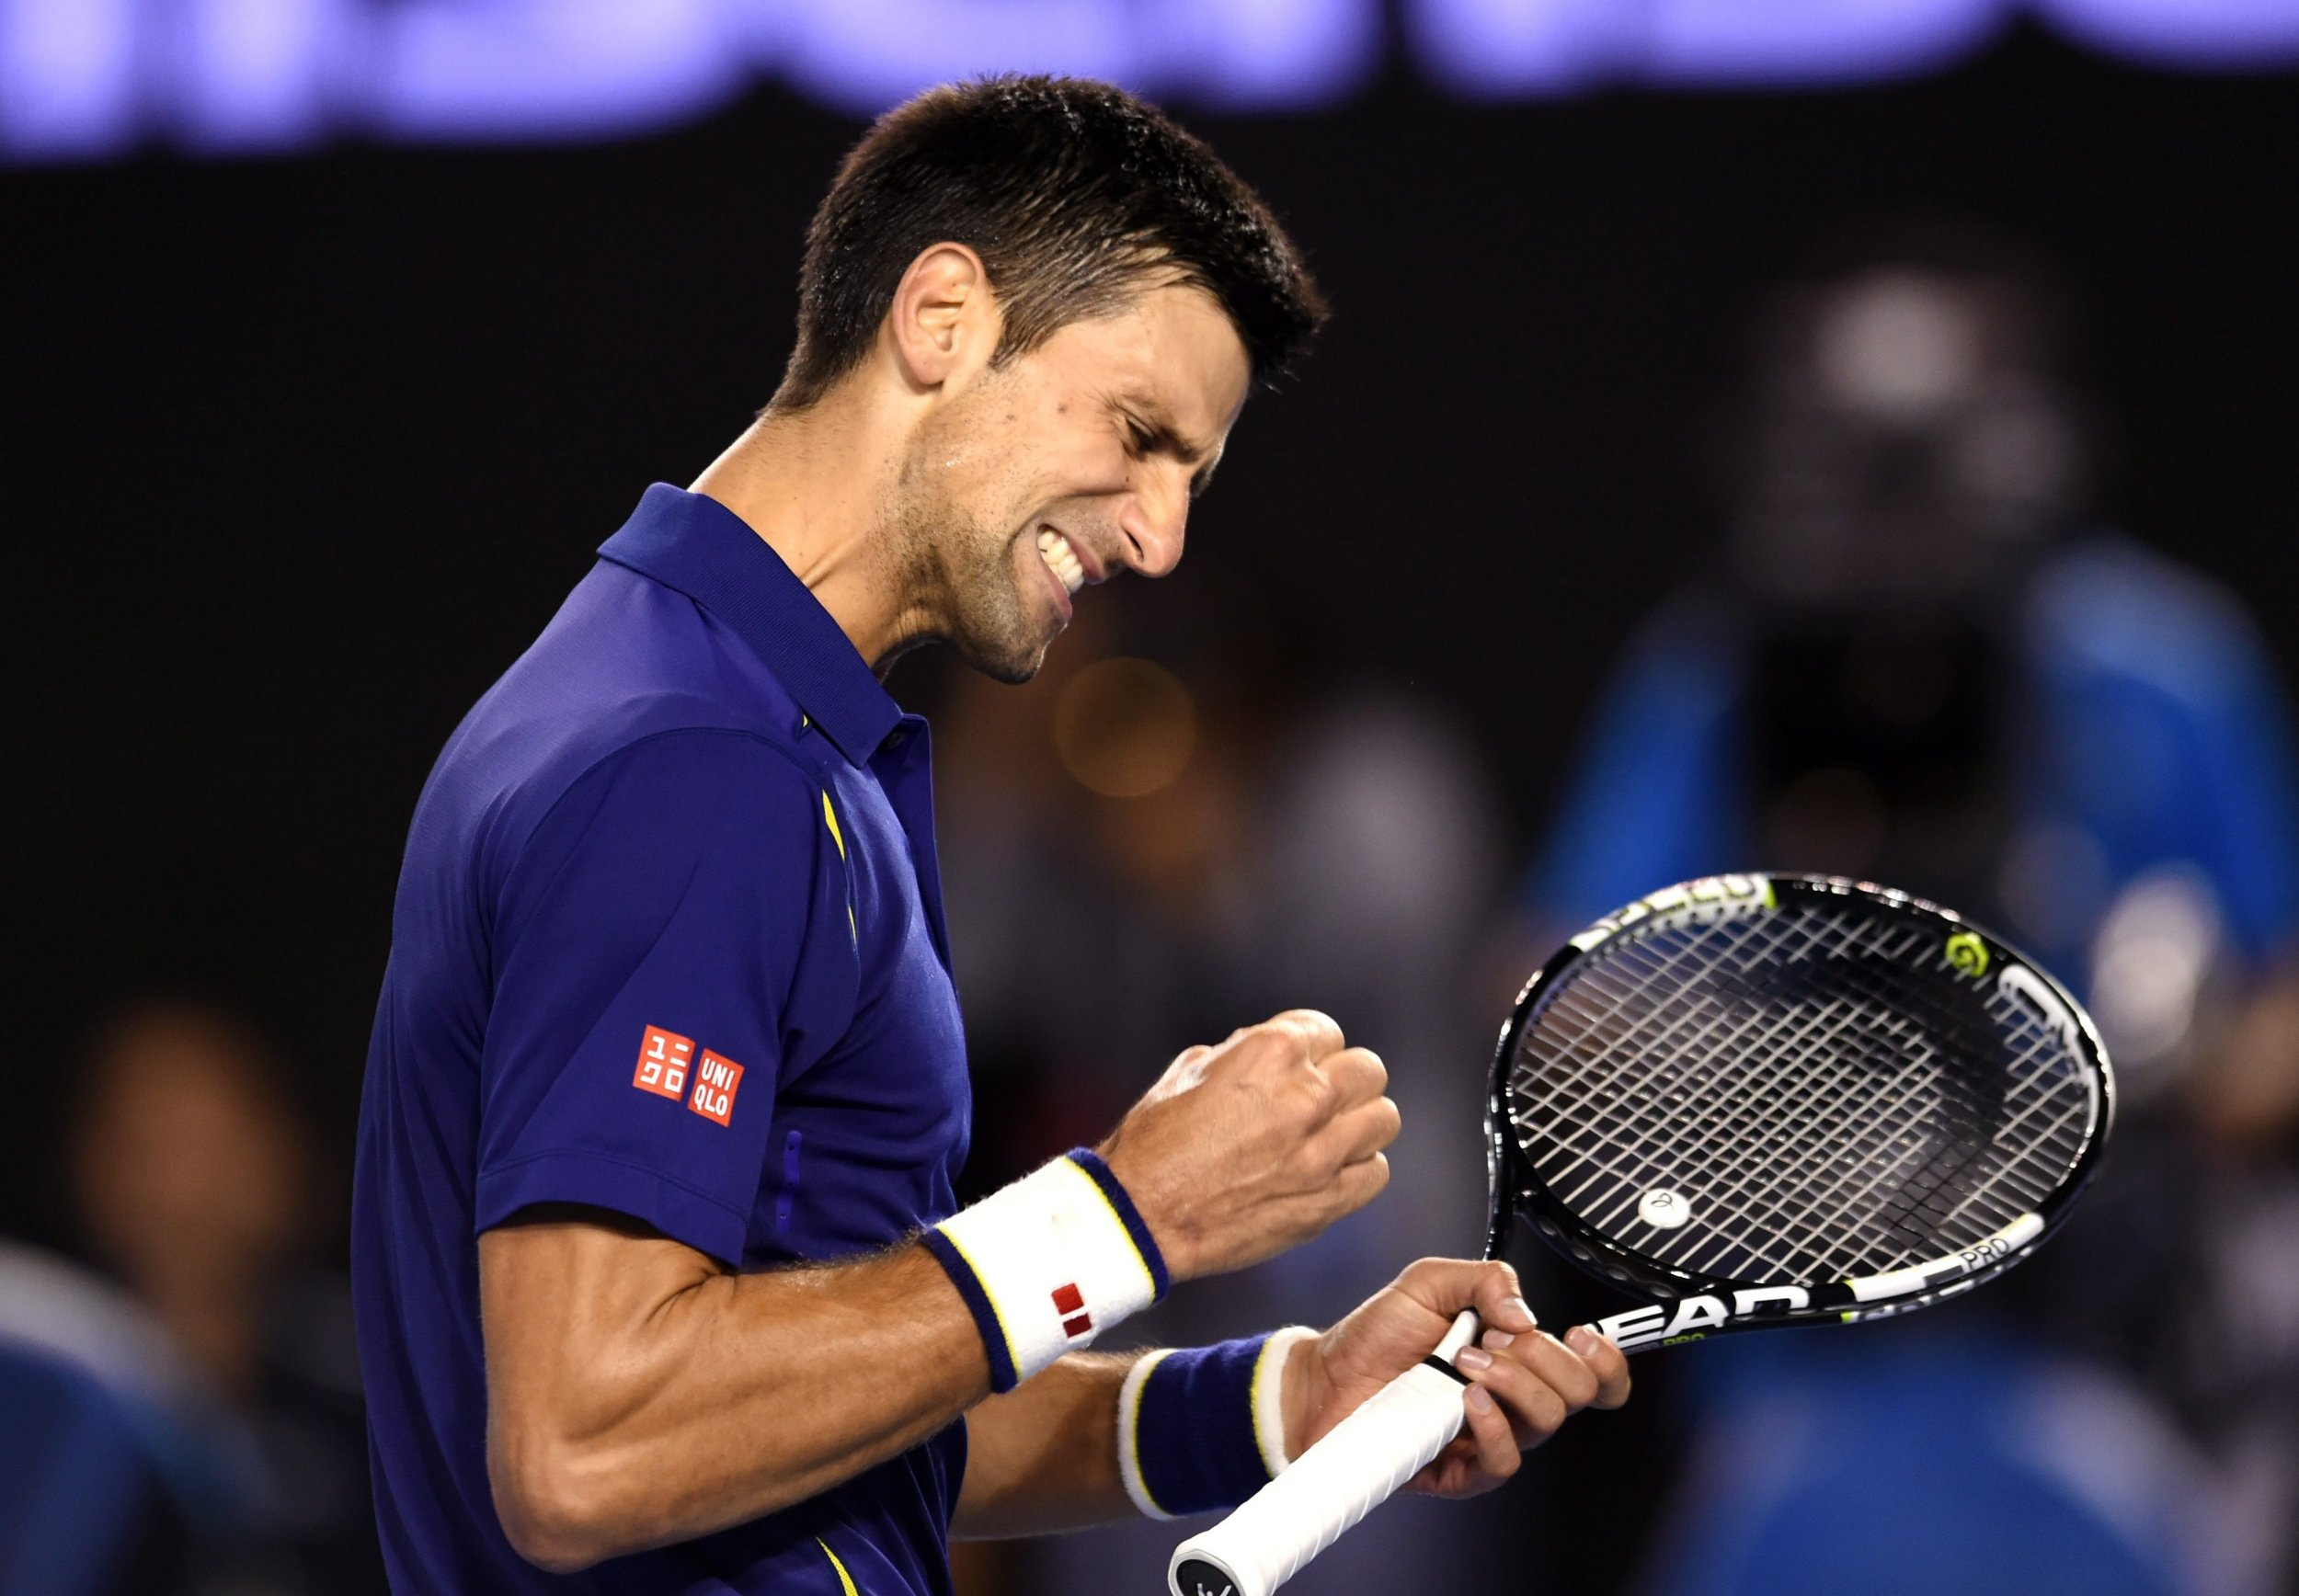 epa05136630 Novak Djokovic of Serbia reacts during his final match against Andy Murray of Britain at the Australian Open tennis tournament in Melbourne, Australia, 31 January 2016. EPA/FILIP SINGER